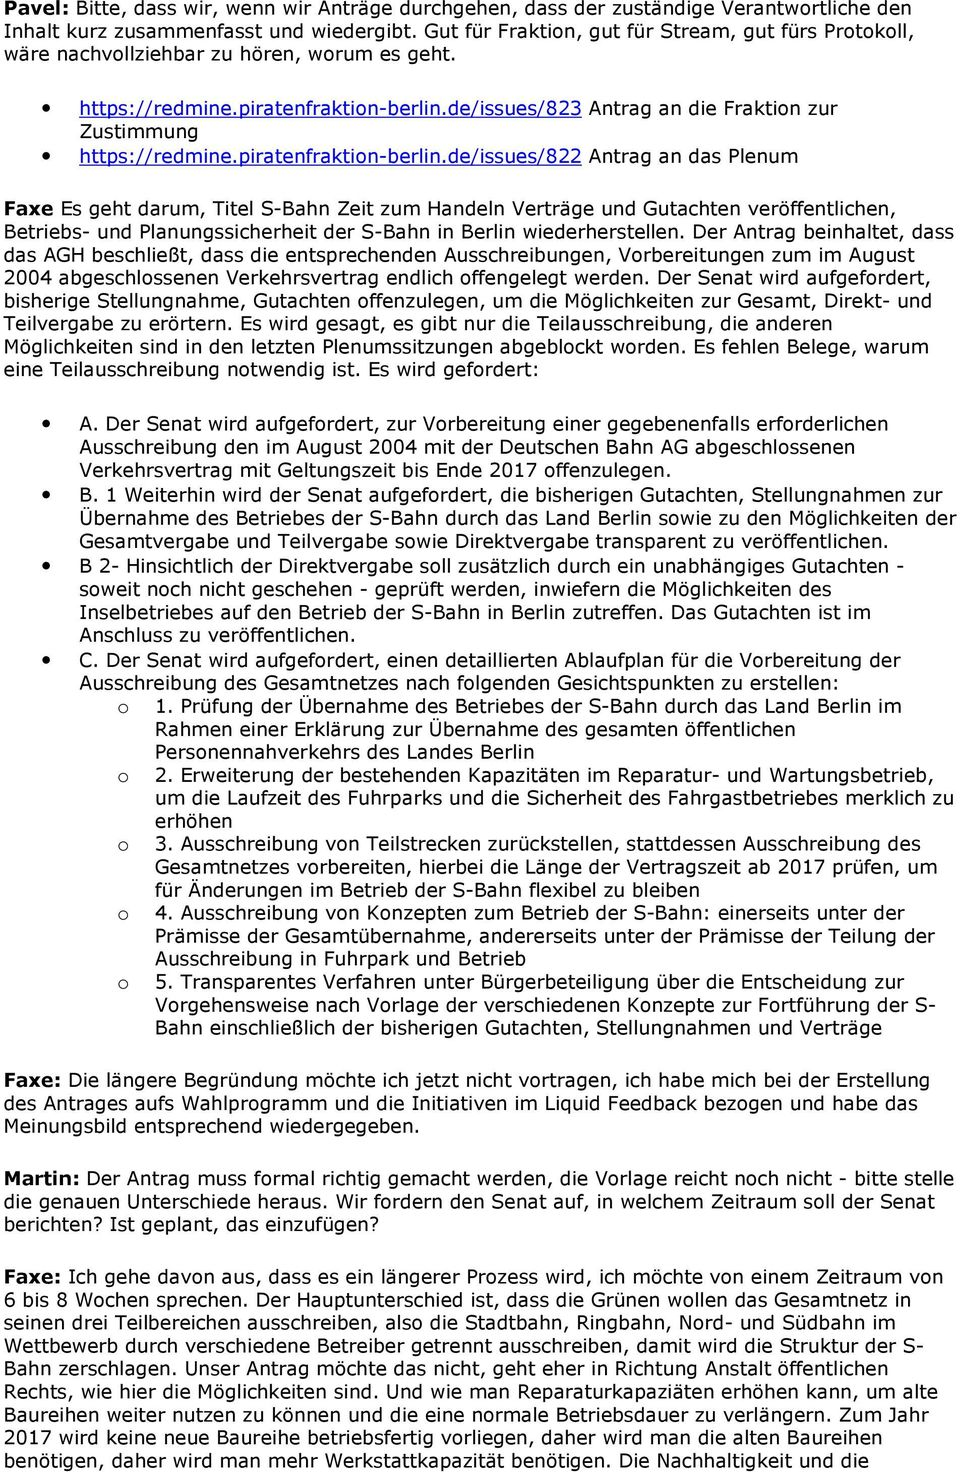 de/issues/823 Antrag an die Fraktion zur Zustimmung https://redmine.piratenfraktion-berlin.